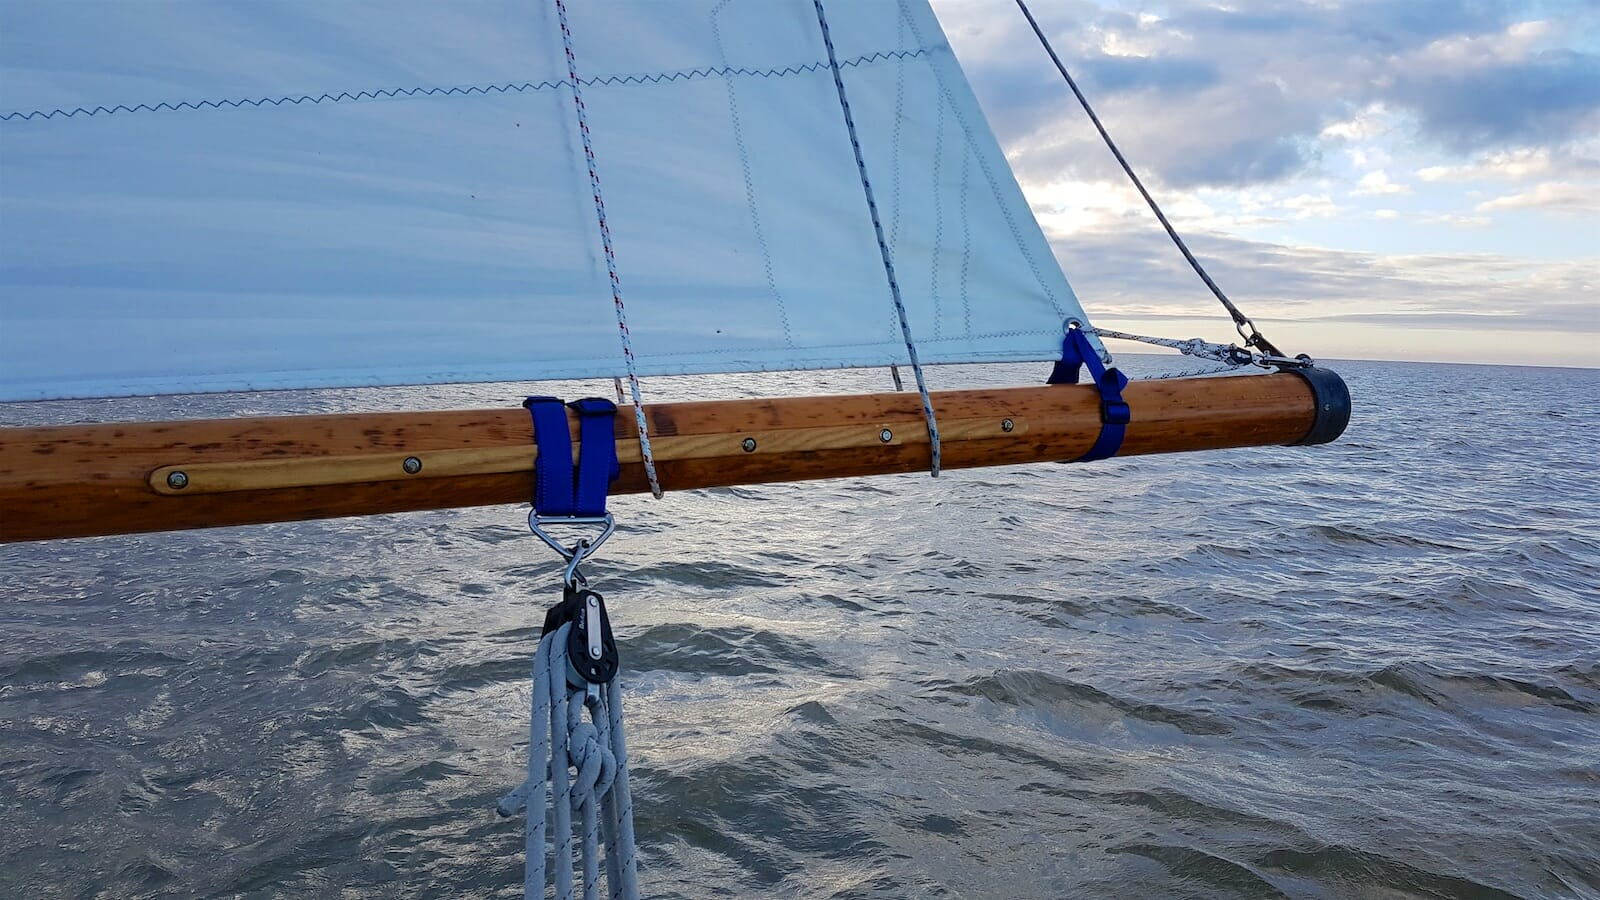 A124 Helene gets her old boom back with slab reefing